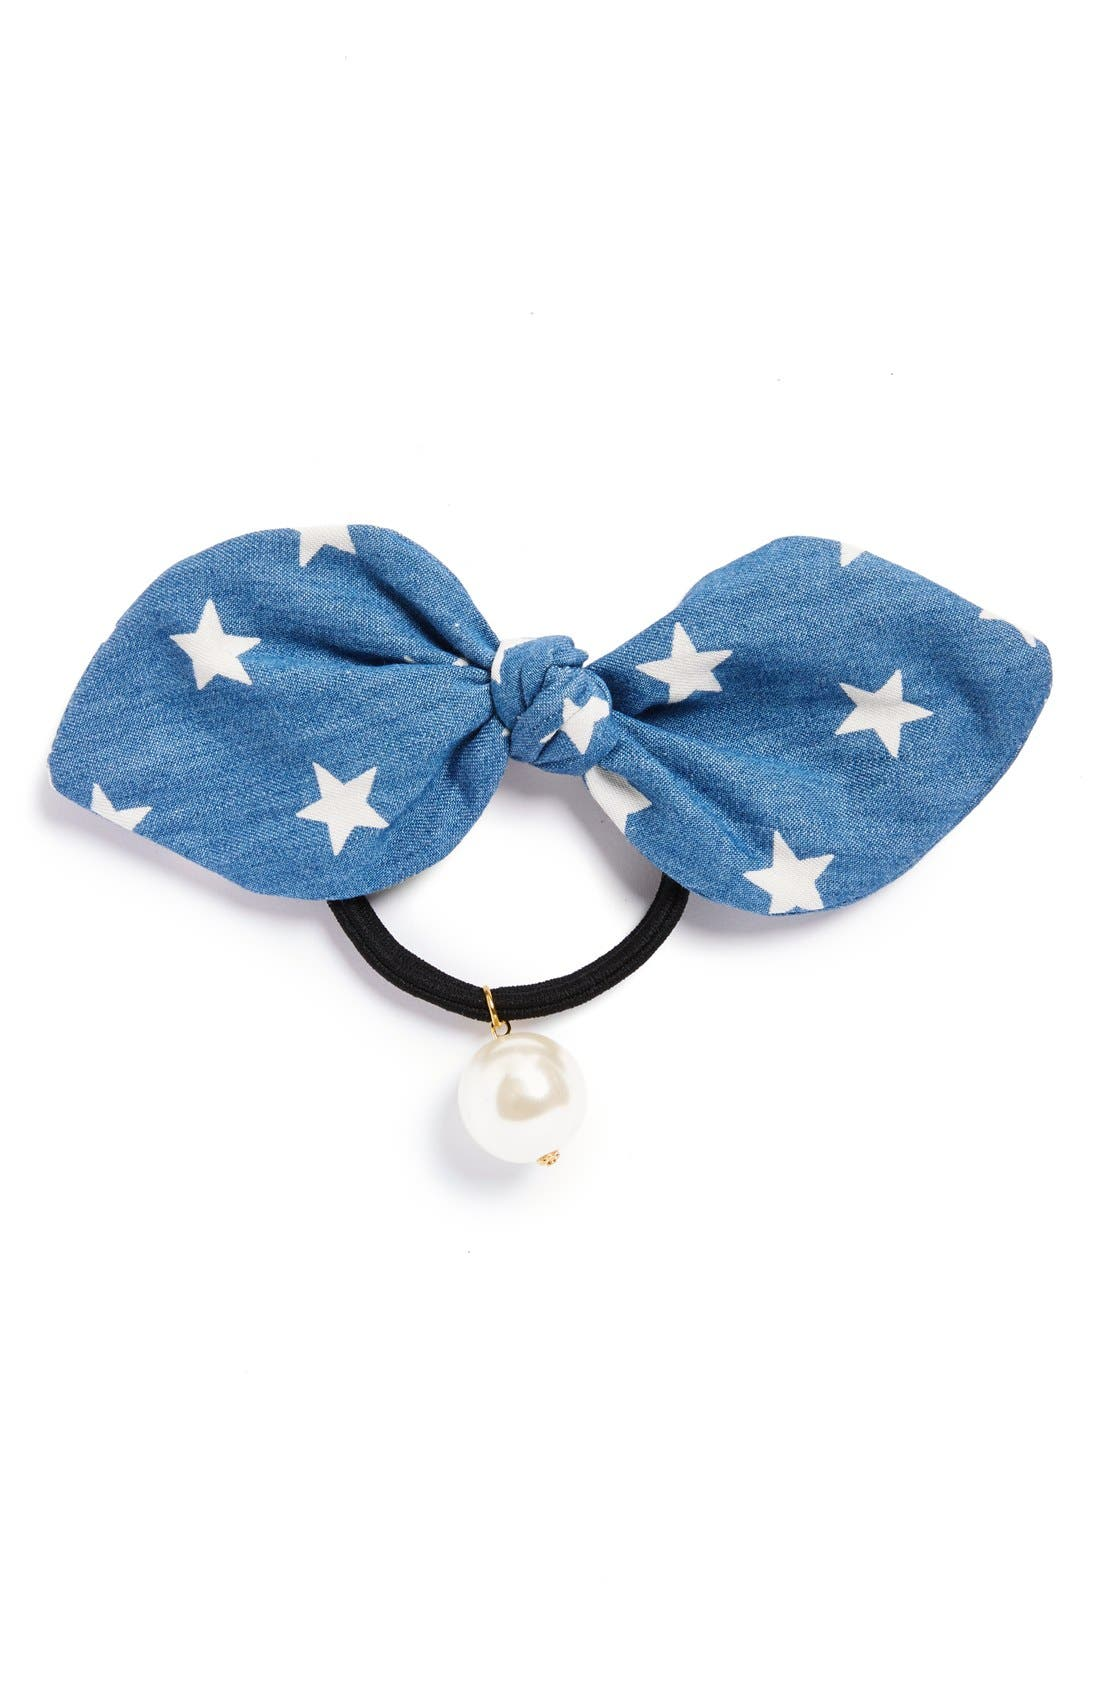 Main Image - Cara 'Denim Star' Ponytail Holder